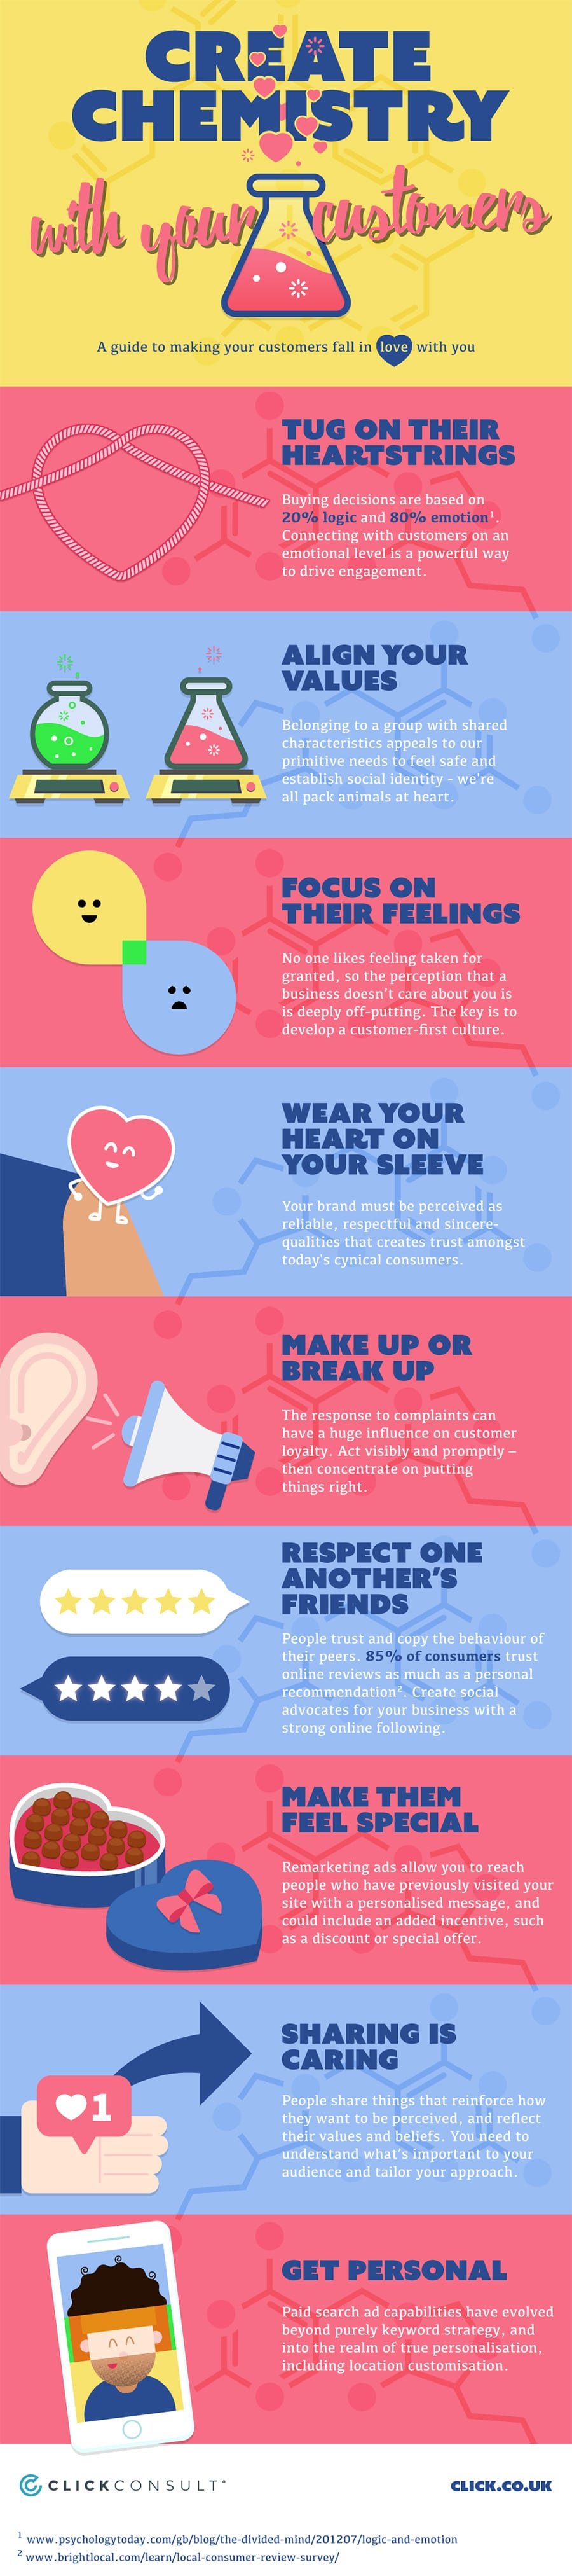 Infographic outlines stats and tips on creating emotional connections